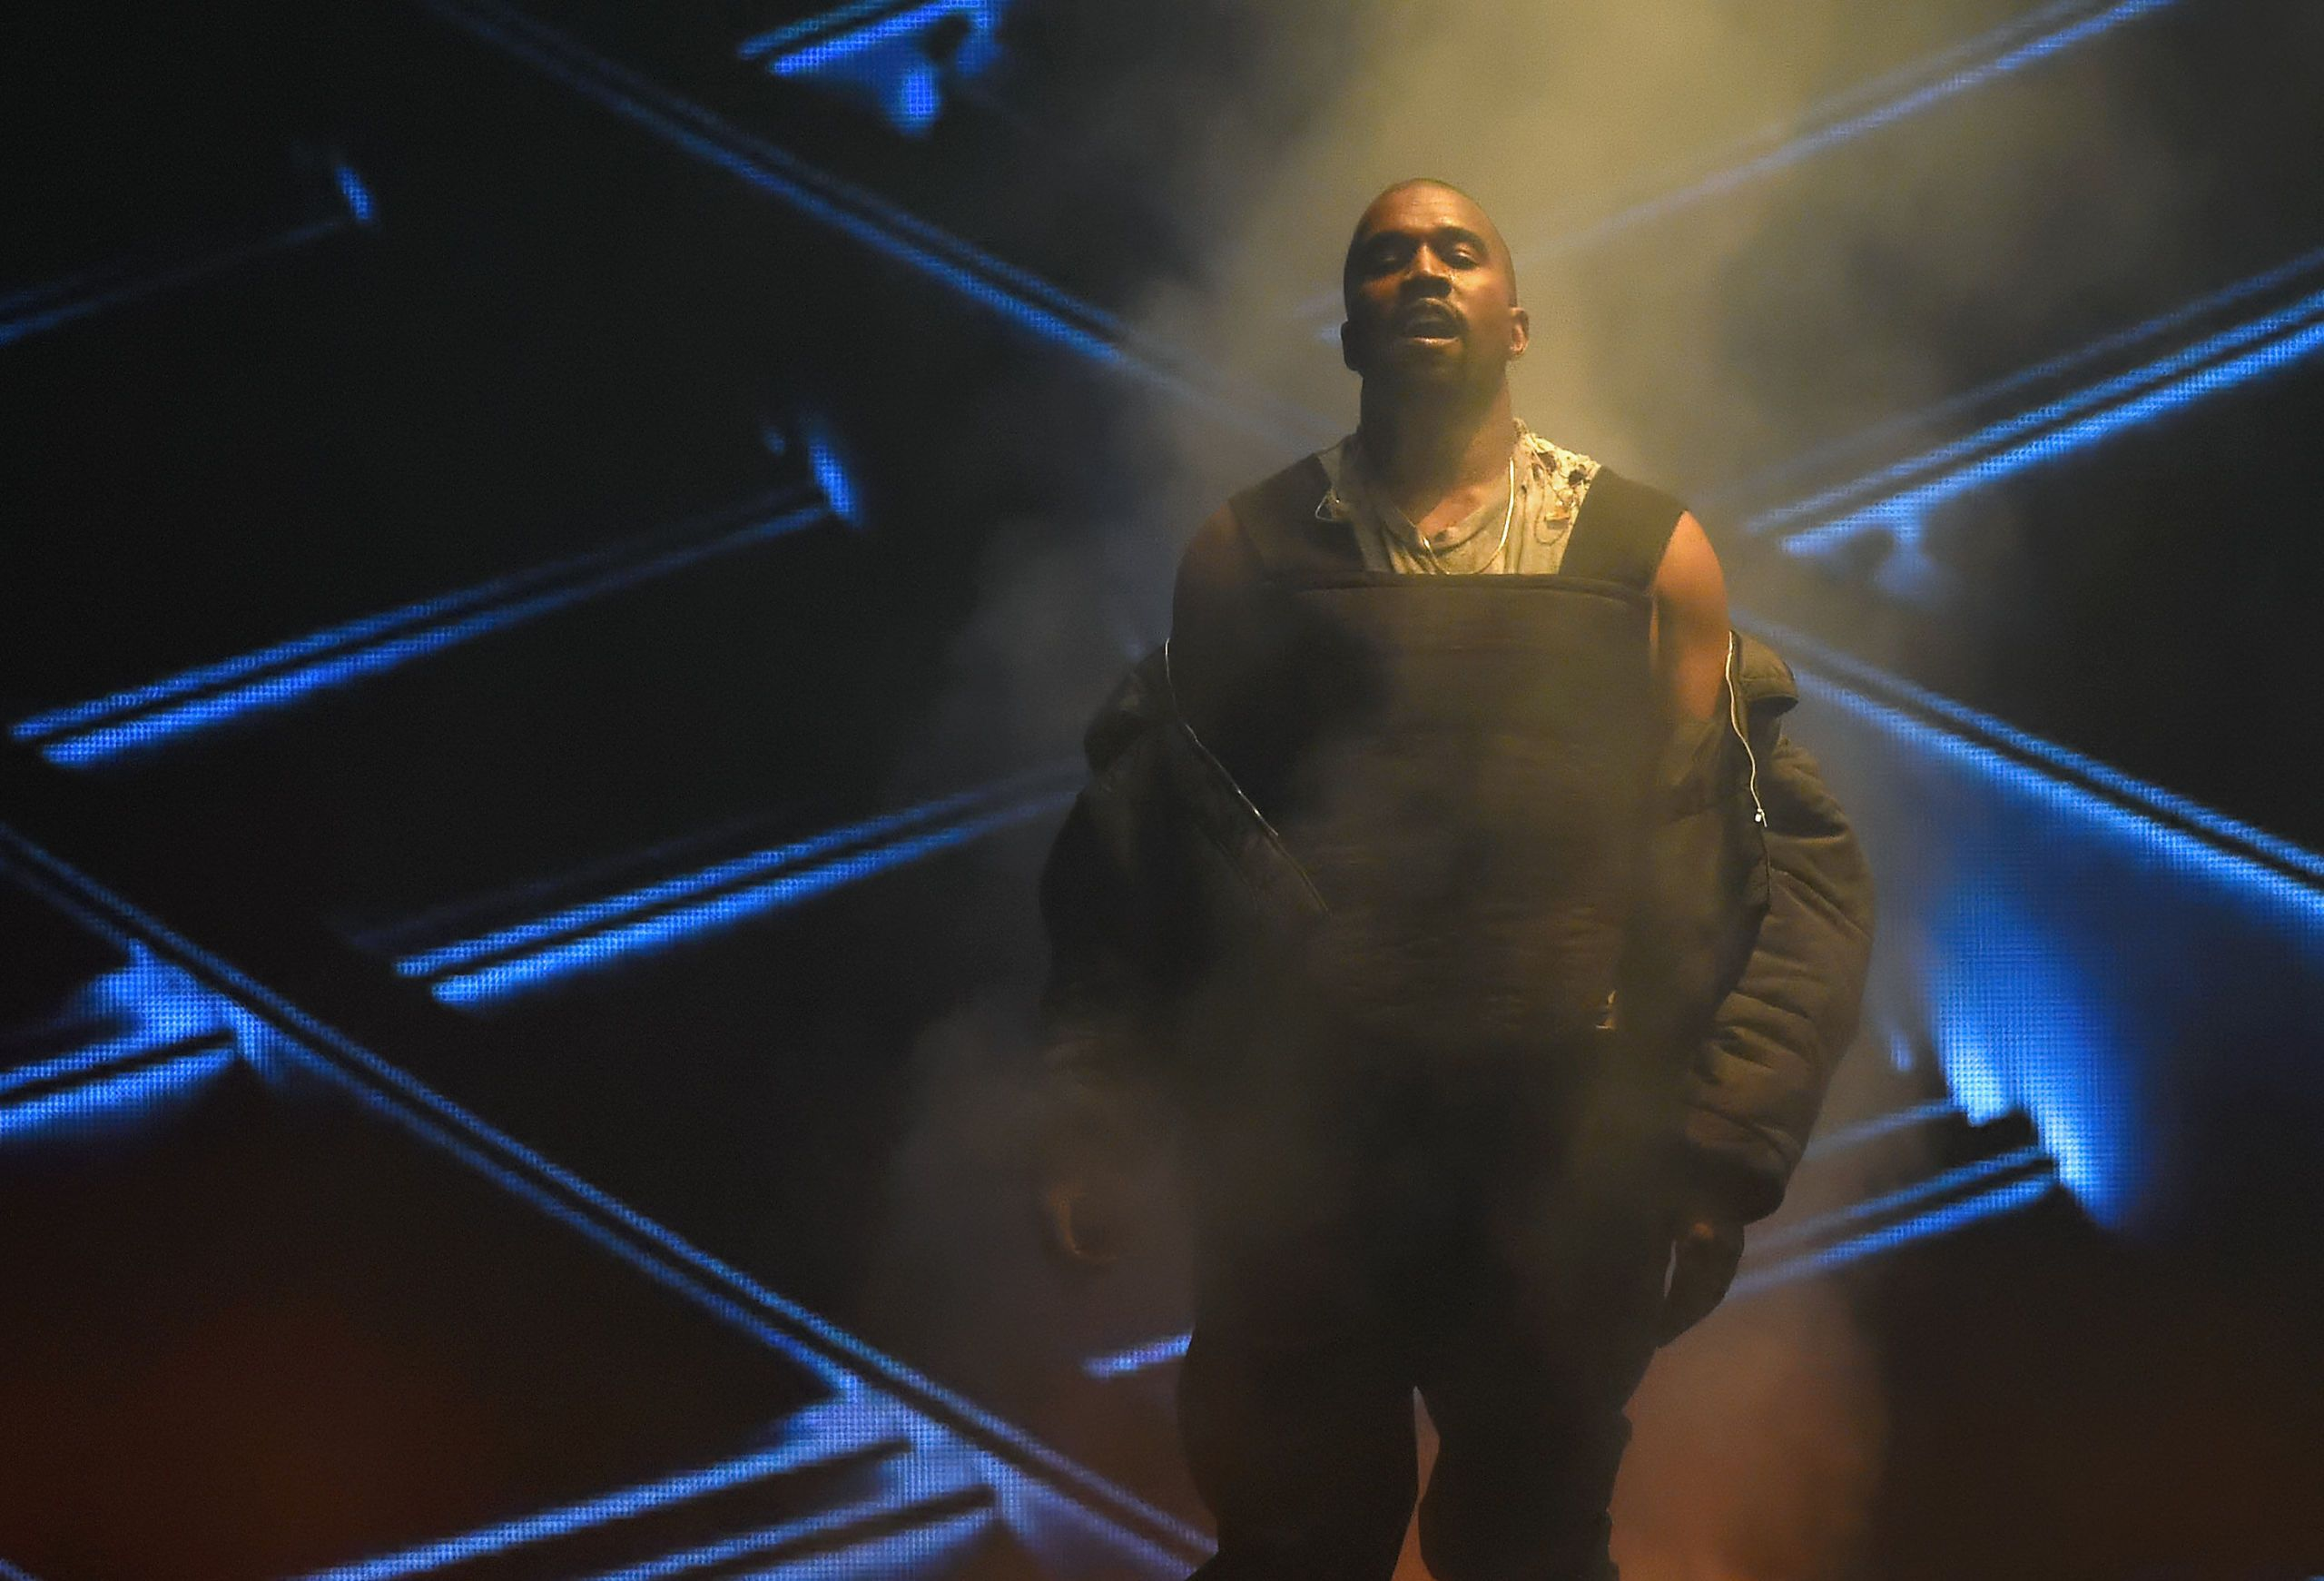 Kanye West Apologizes for That Messy Censored Billboard Music Awards Performance